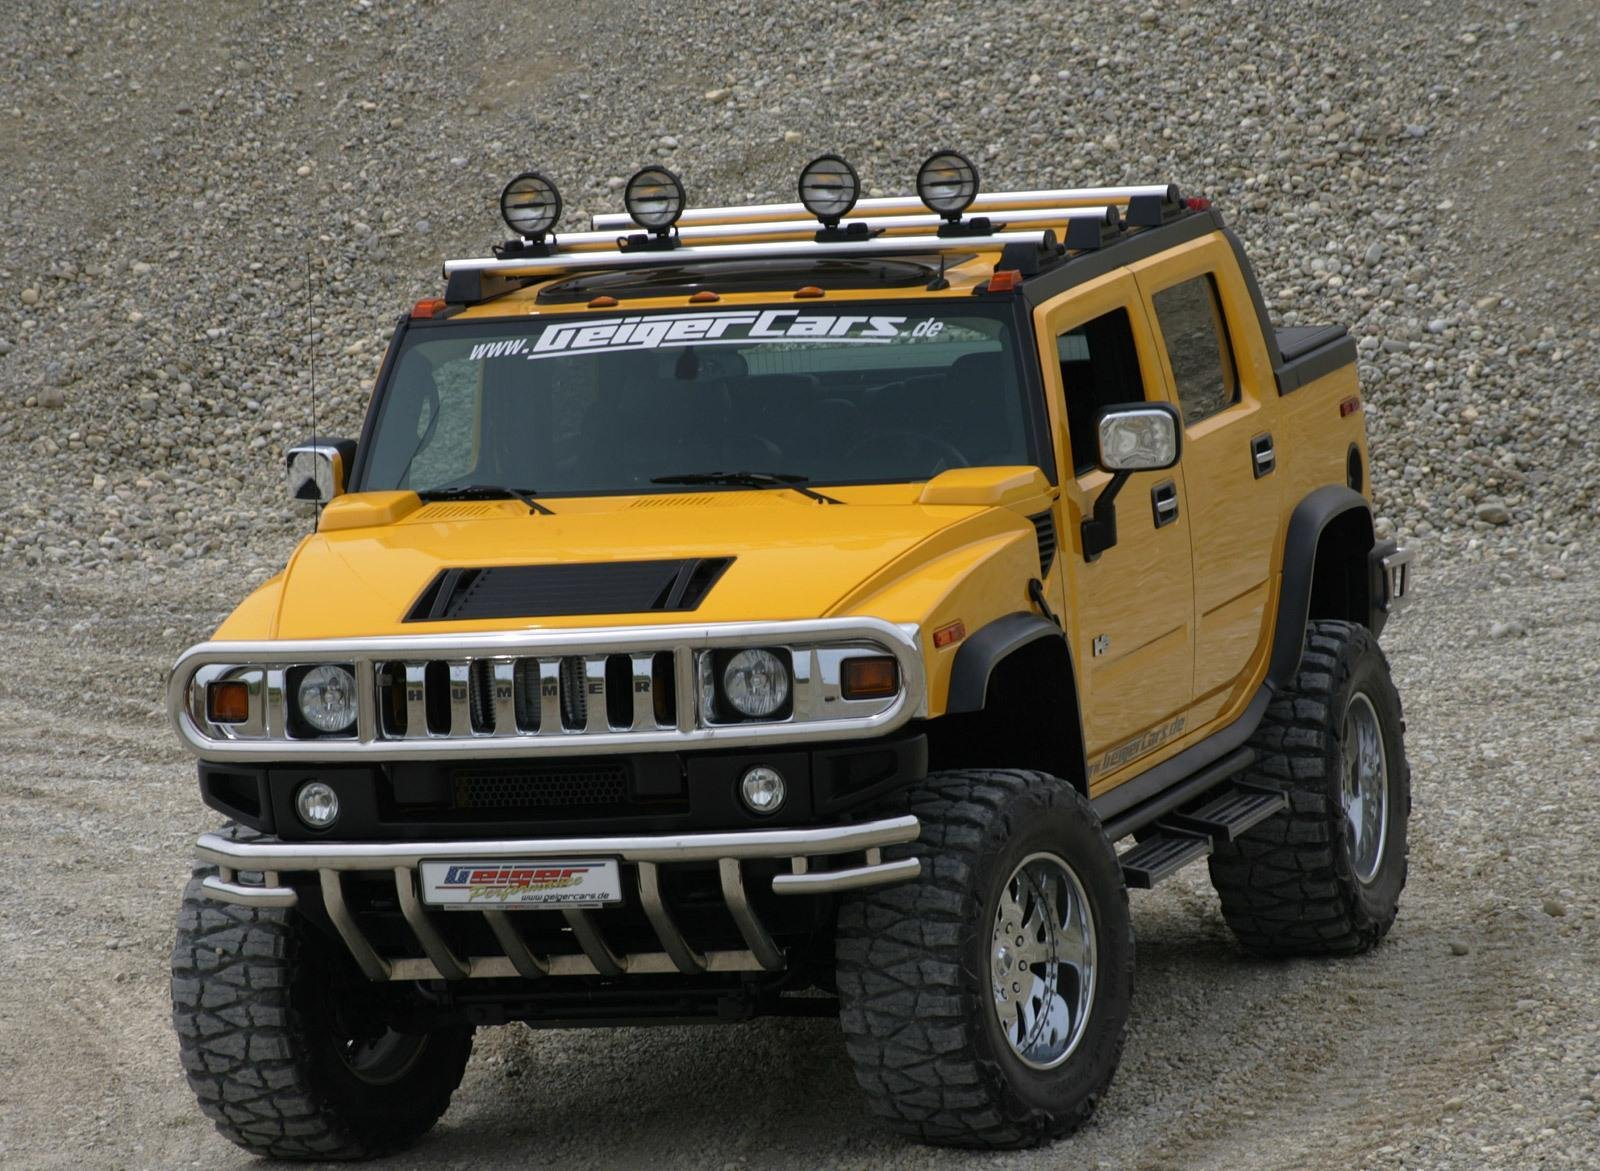 2006 geicarcars hummer h2 hannibal review top speed. Black Bedroom Furniture Sets. Home Design Ideas